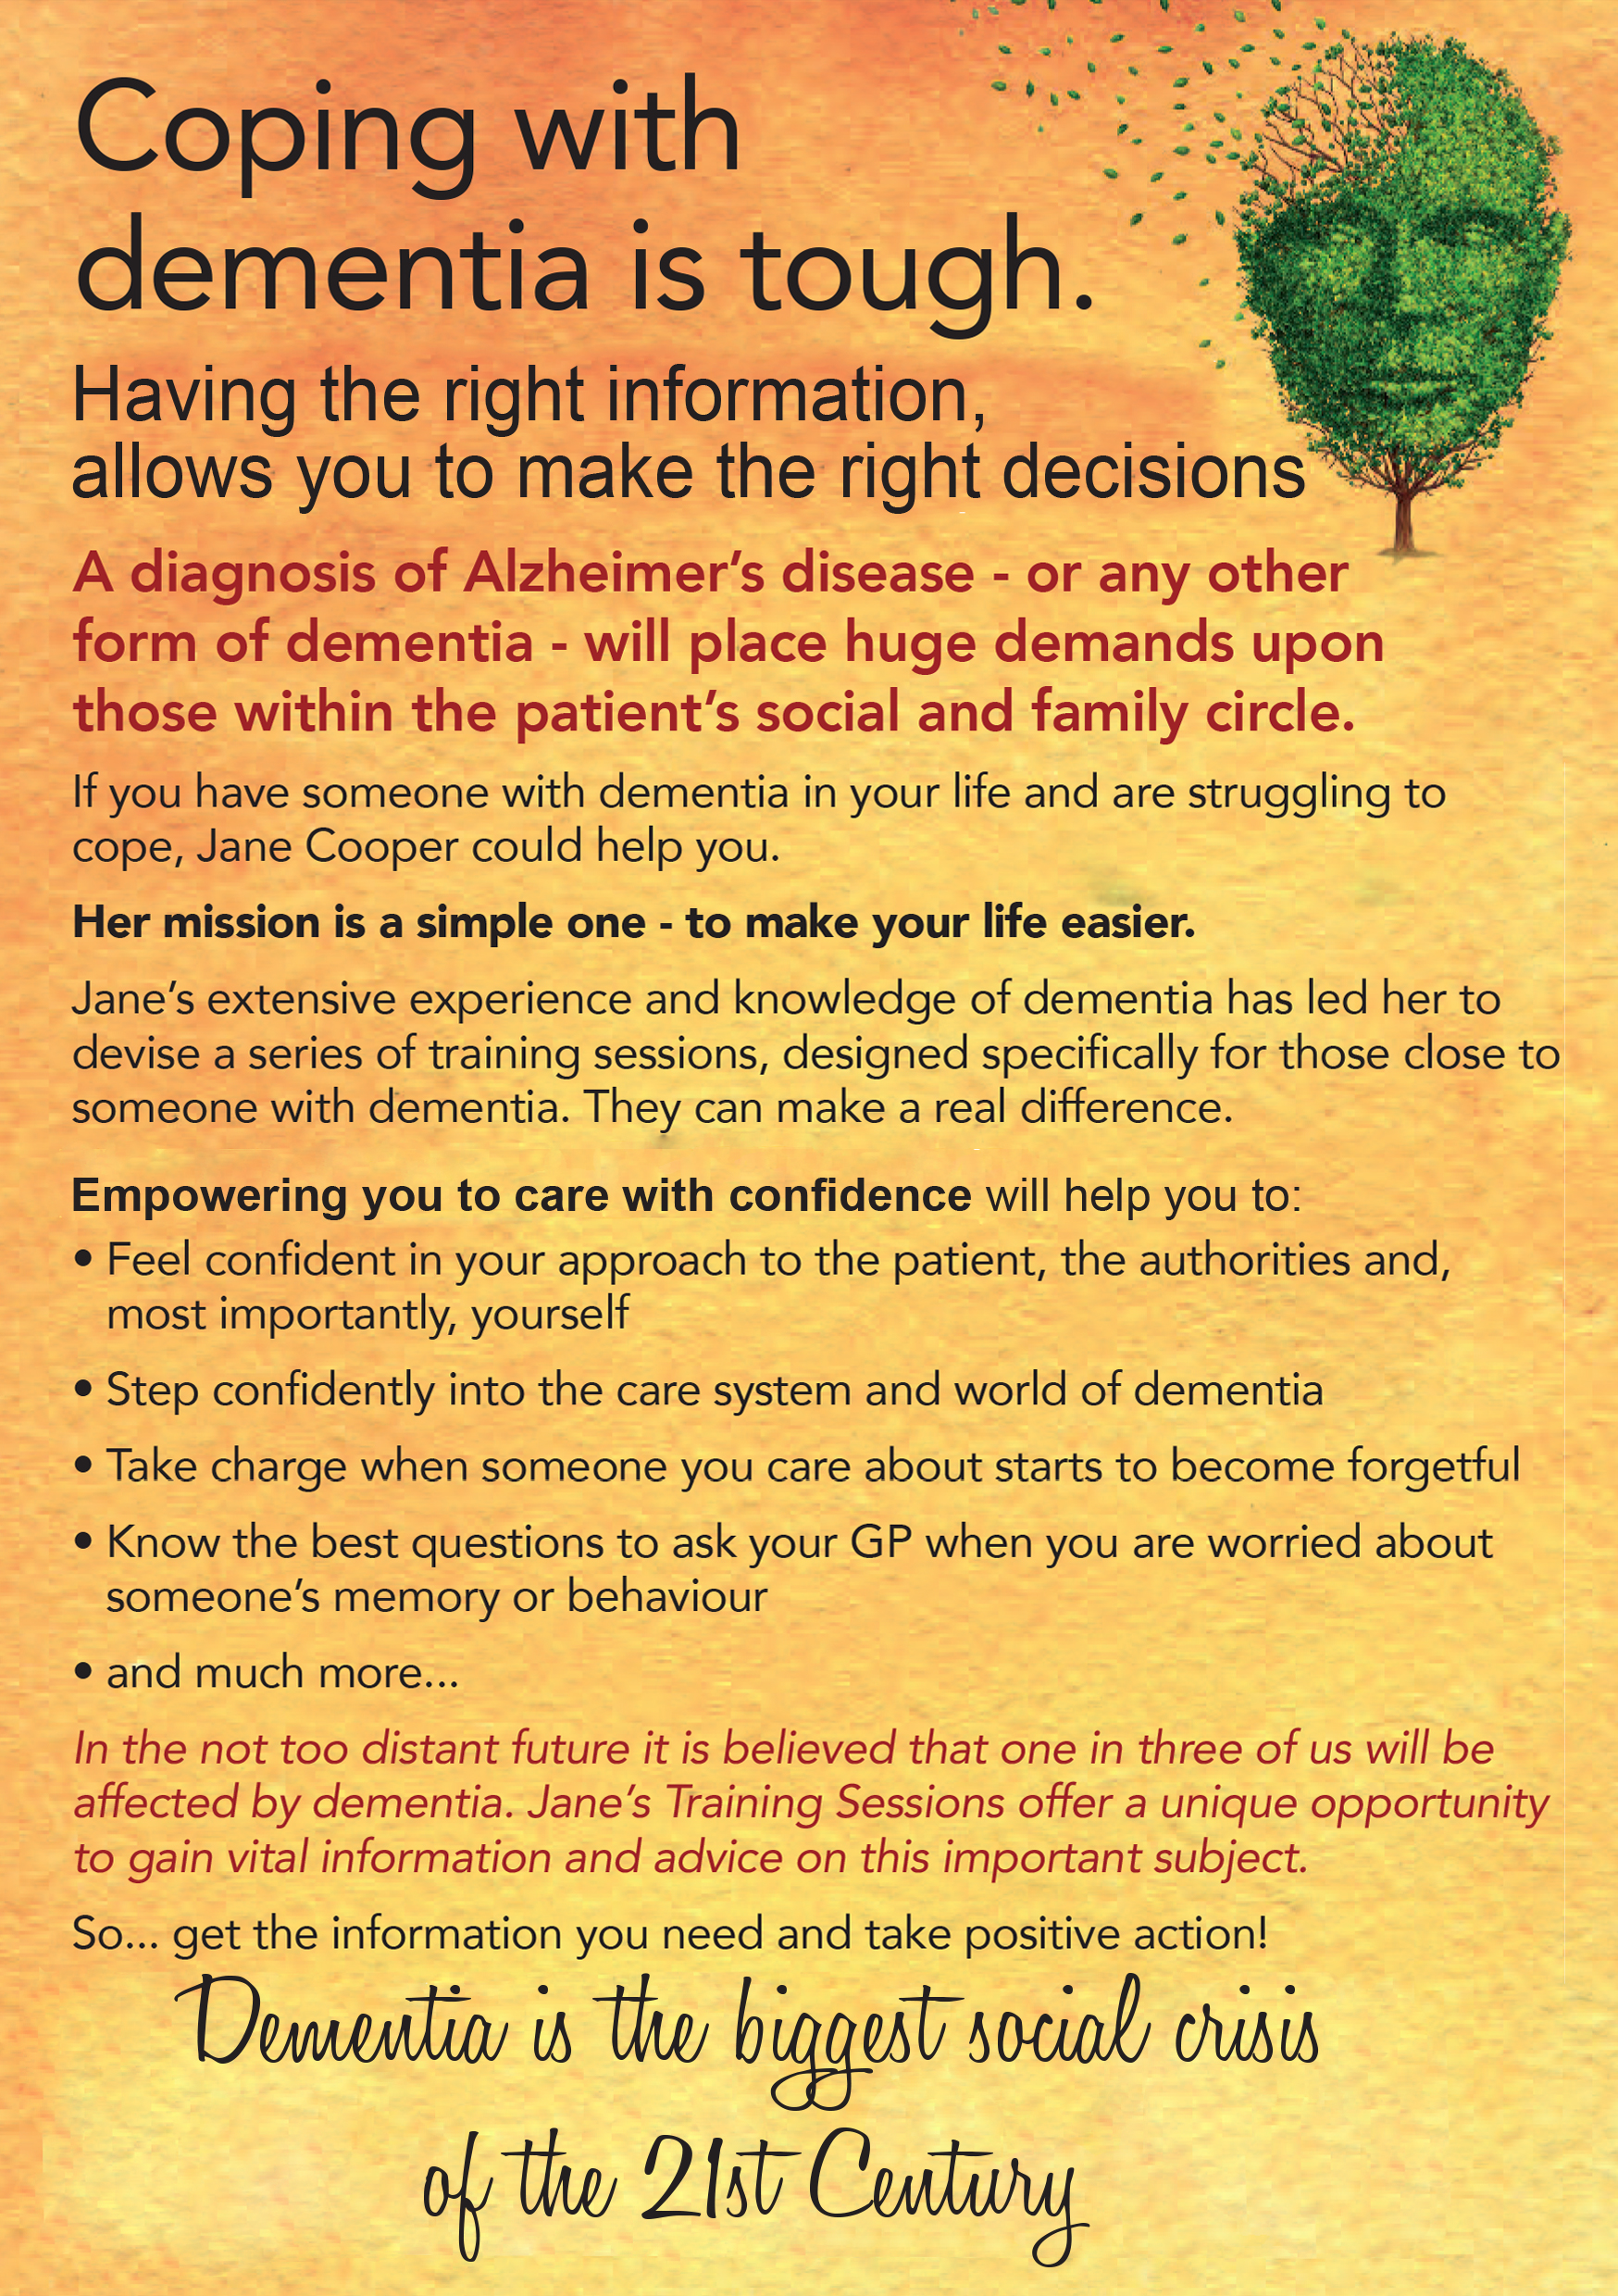 Alzheimer's disease- dementia - will place huge demands on those within the patients social and family circle